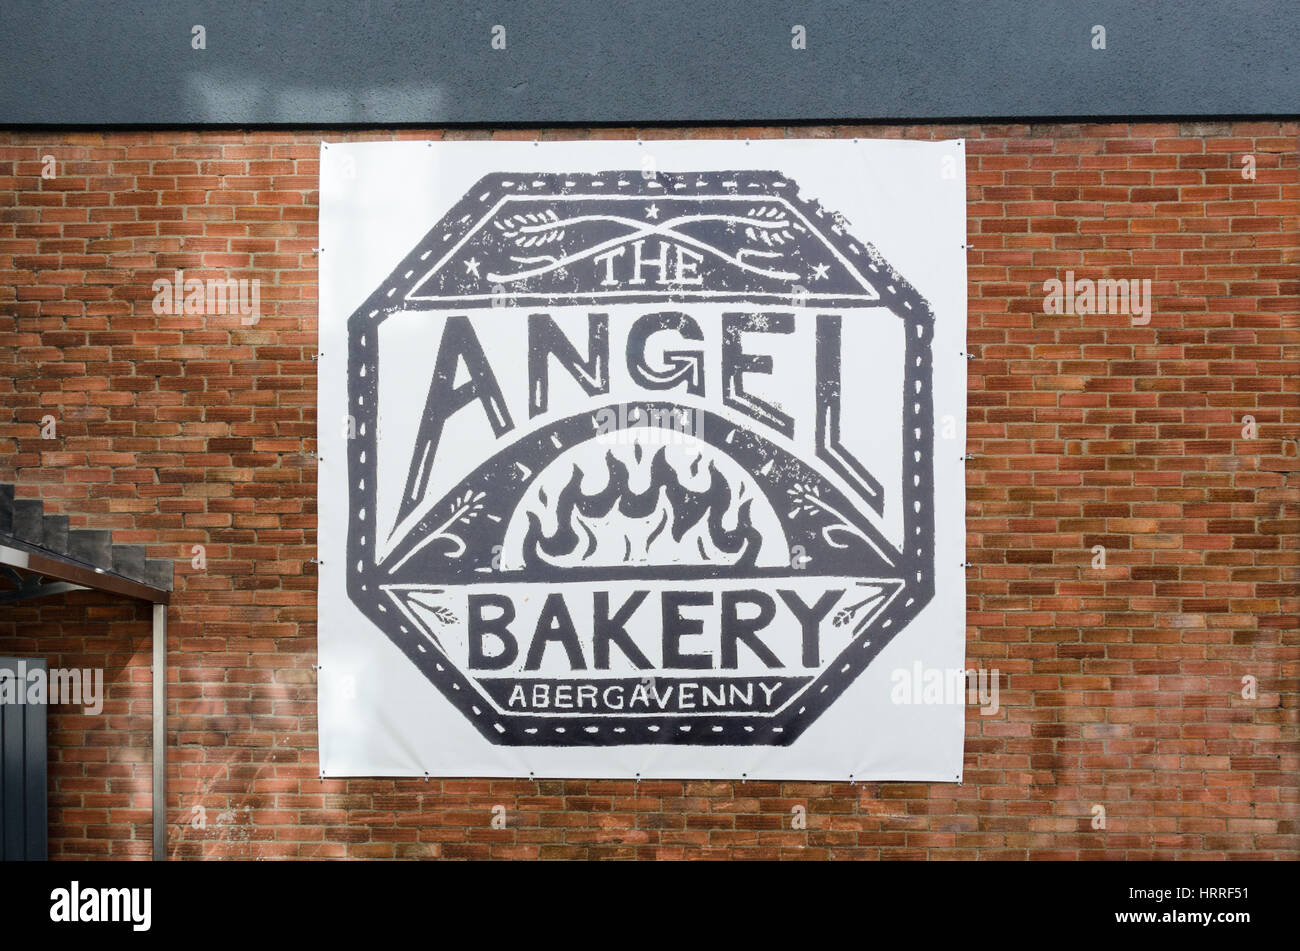 The new Angel Bakery at the Angel Hotel in Abergavenny, Monmouthshire, Wales - Stock Image